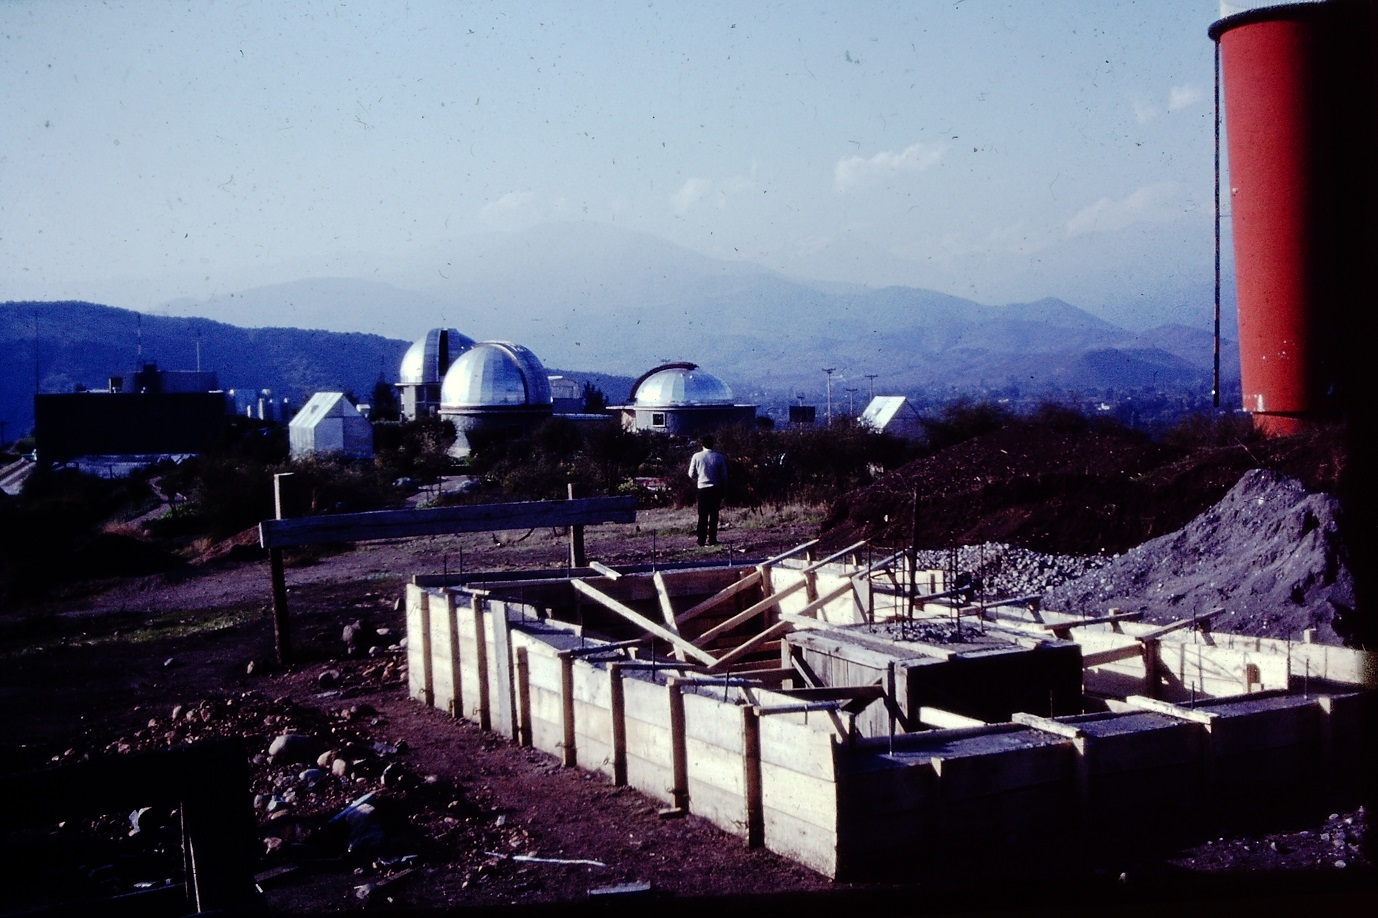 Enterreno - Fotos históricas de chile - fotos antiguas de Chile - Dependencias Observatorio Cerro Calán en los 60s